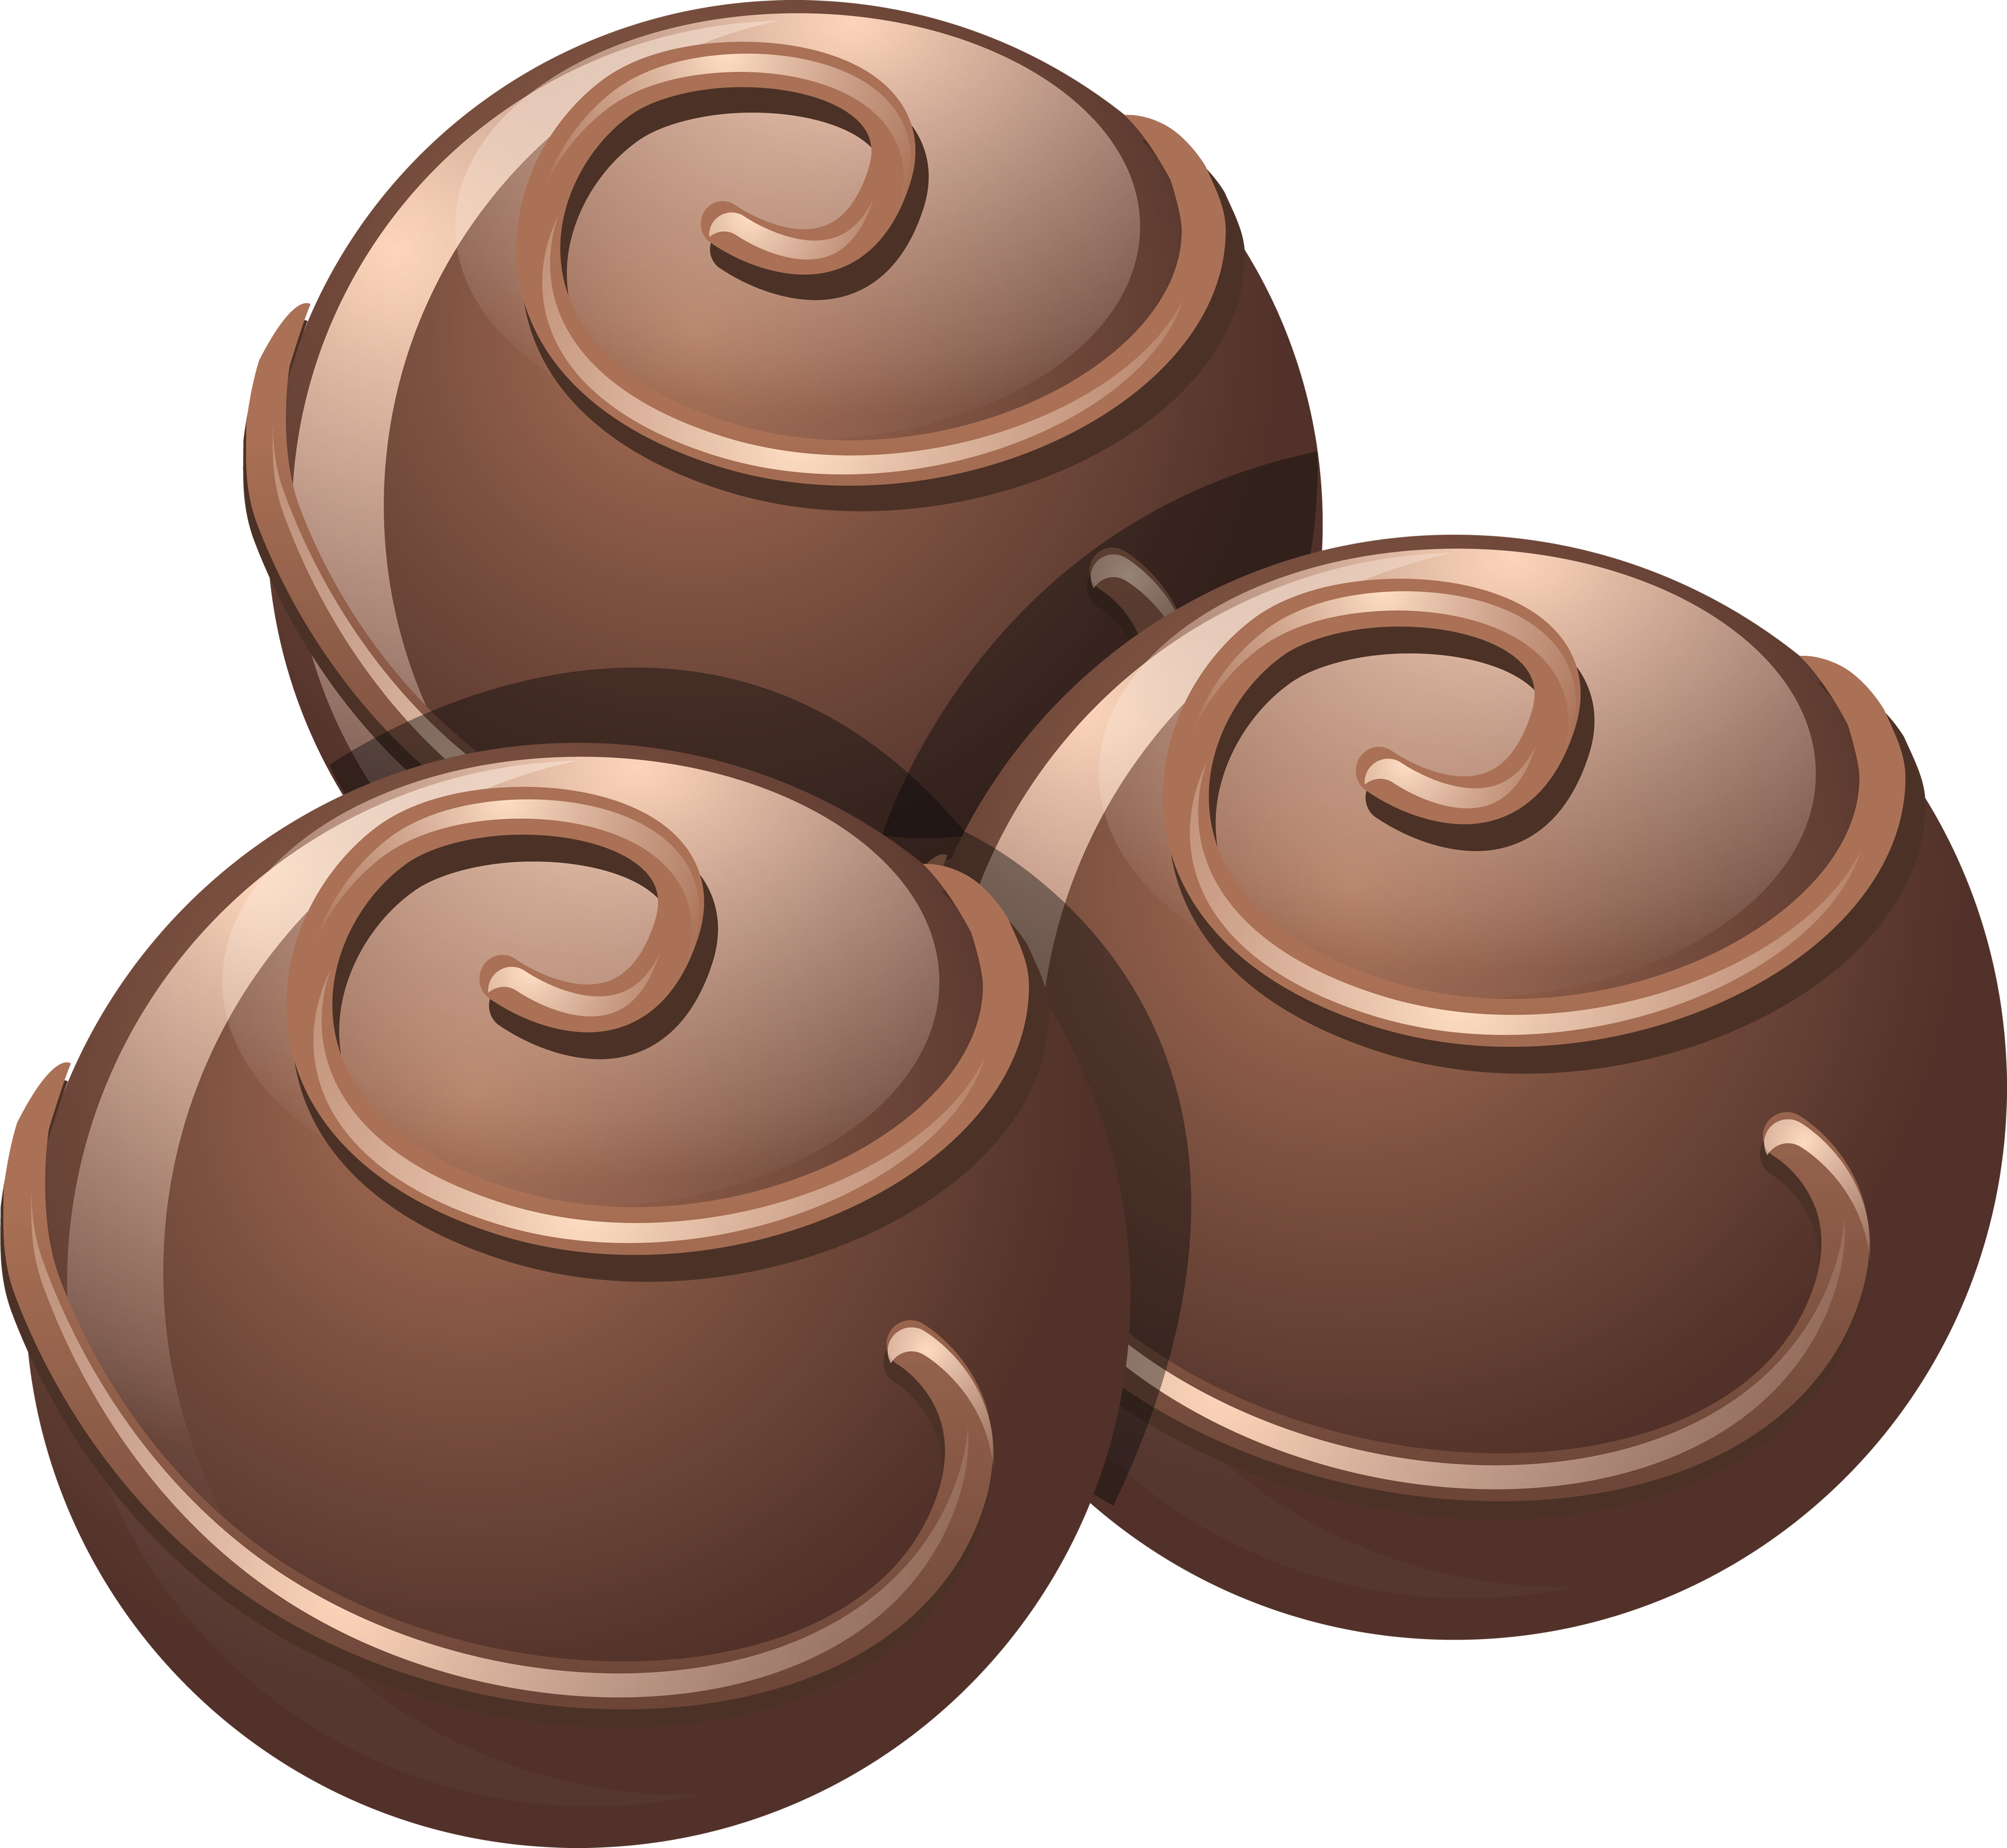 Chocolate HD PNG-PlusPNG.com-3498 - Chocolate HD PNG